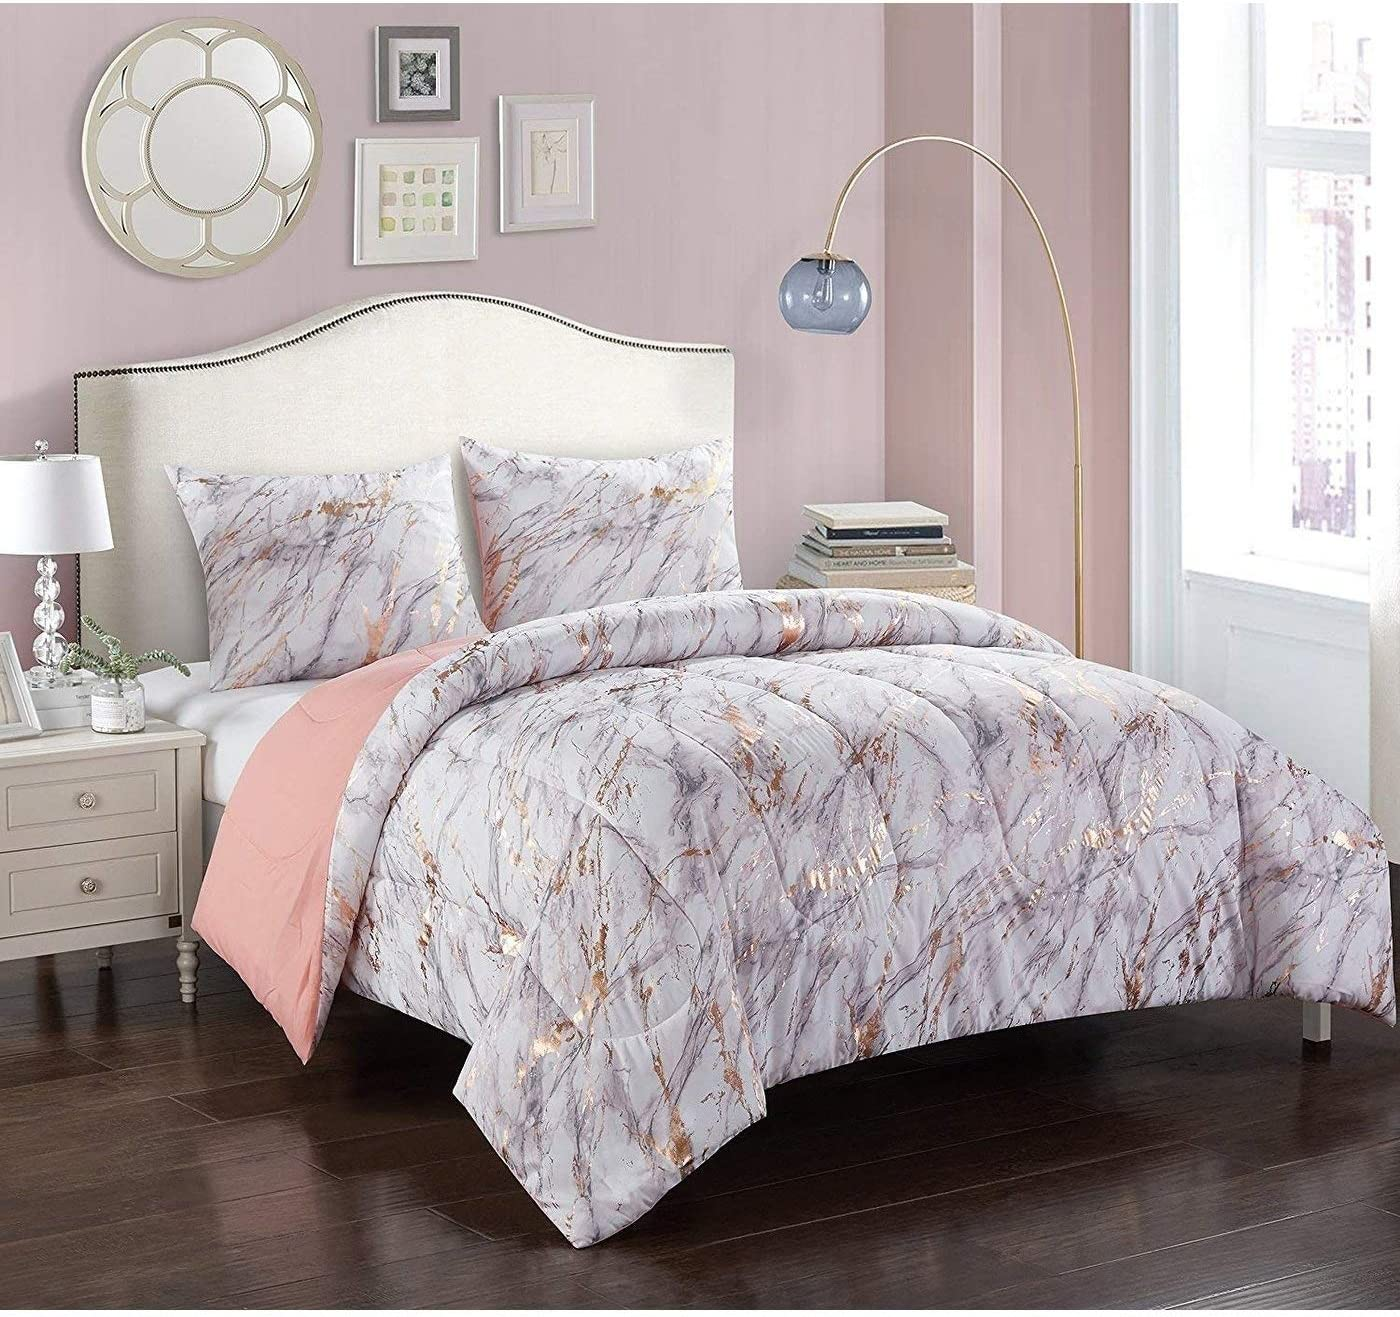 2 Piece Pink Gold Girls Marble Comforter Twin Set Girl Marbble Theme Bedding Gold Metalic Crackle Pattern Streaks Swirls Foil, Polyester